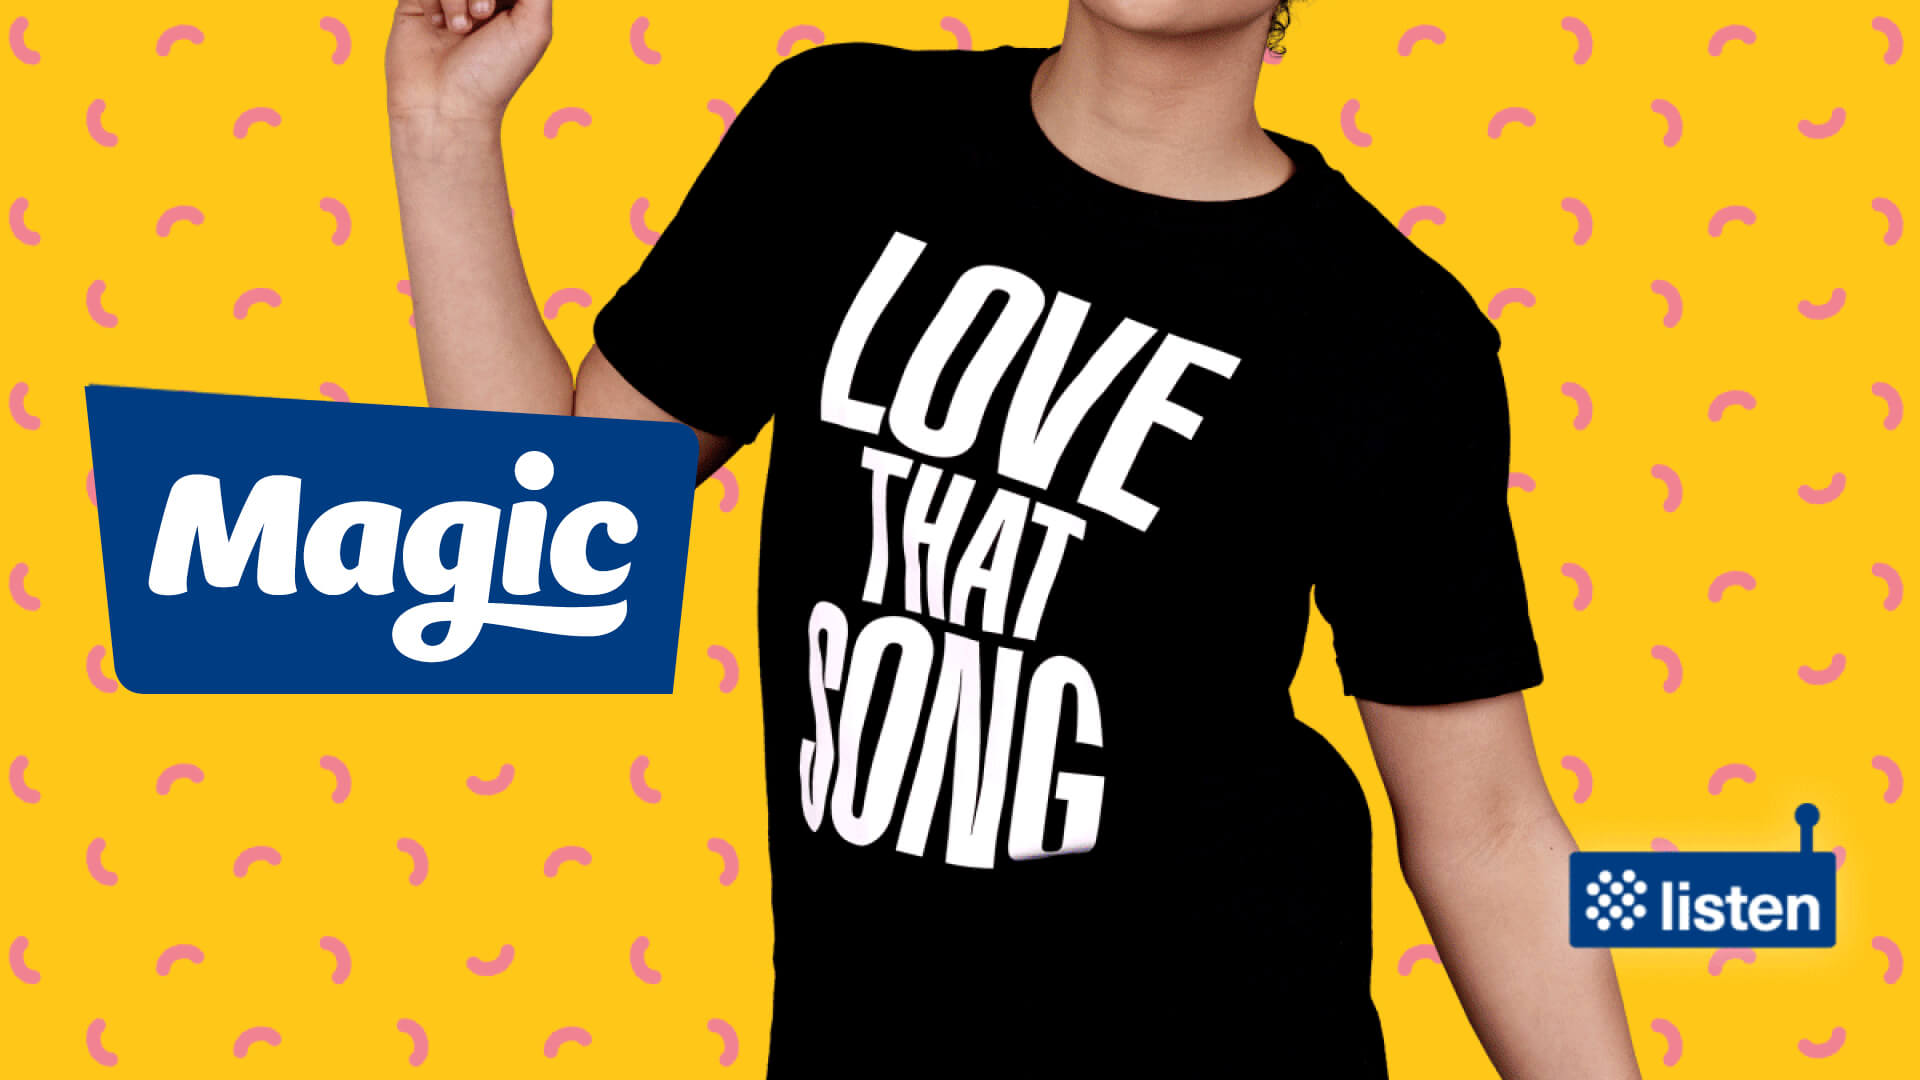 Magic radio relaunch rebrand repositioning